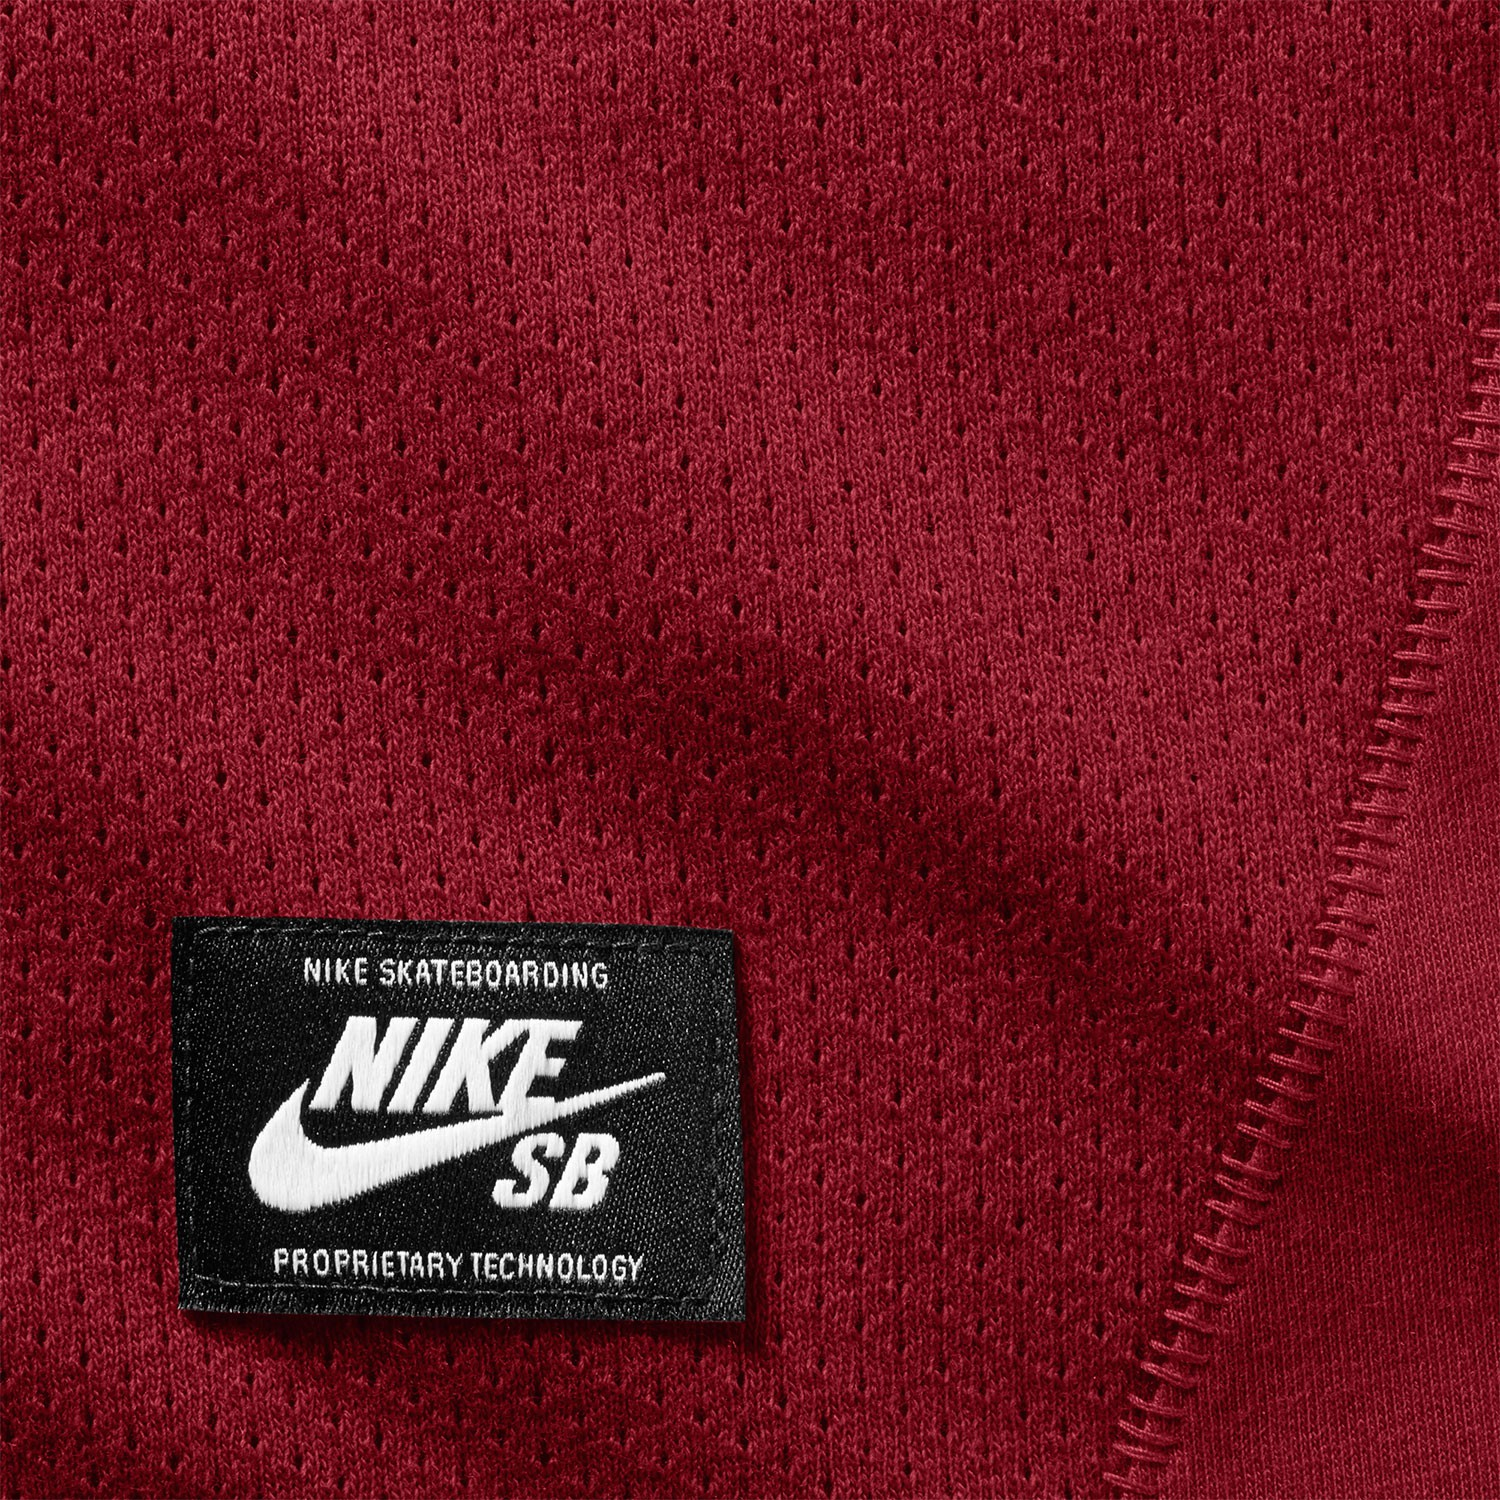 Tielko Nike SB Dri-Fit Cool Skyline